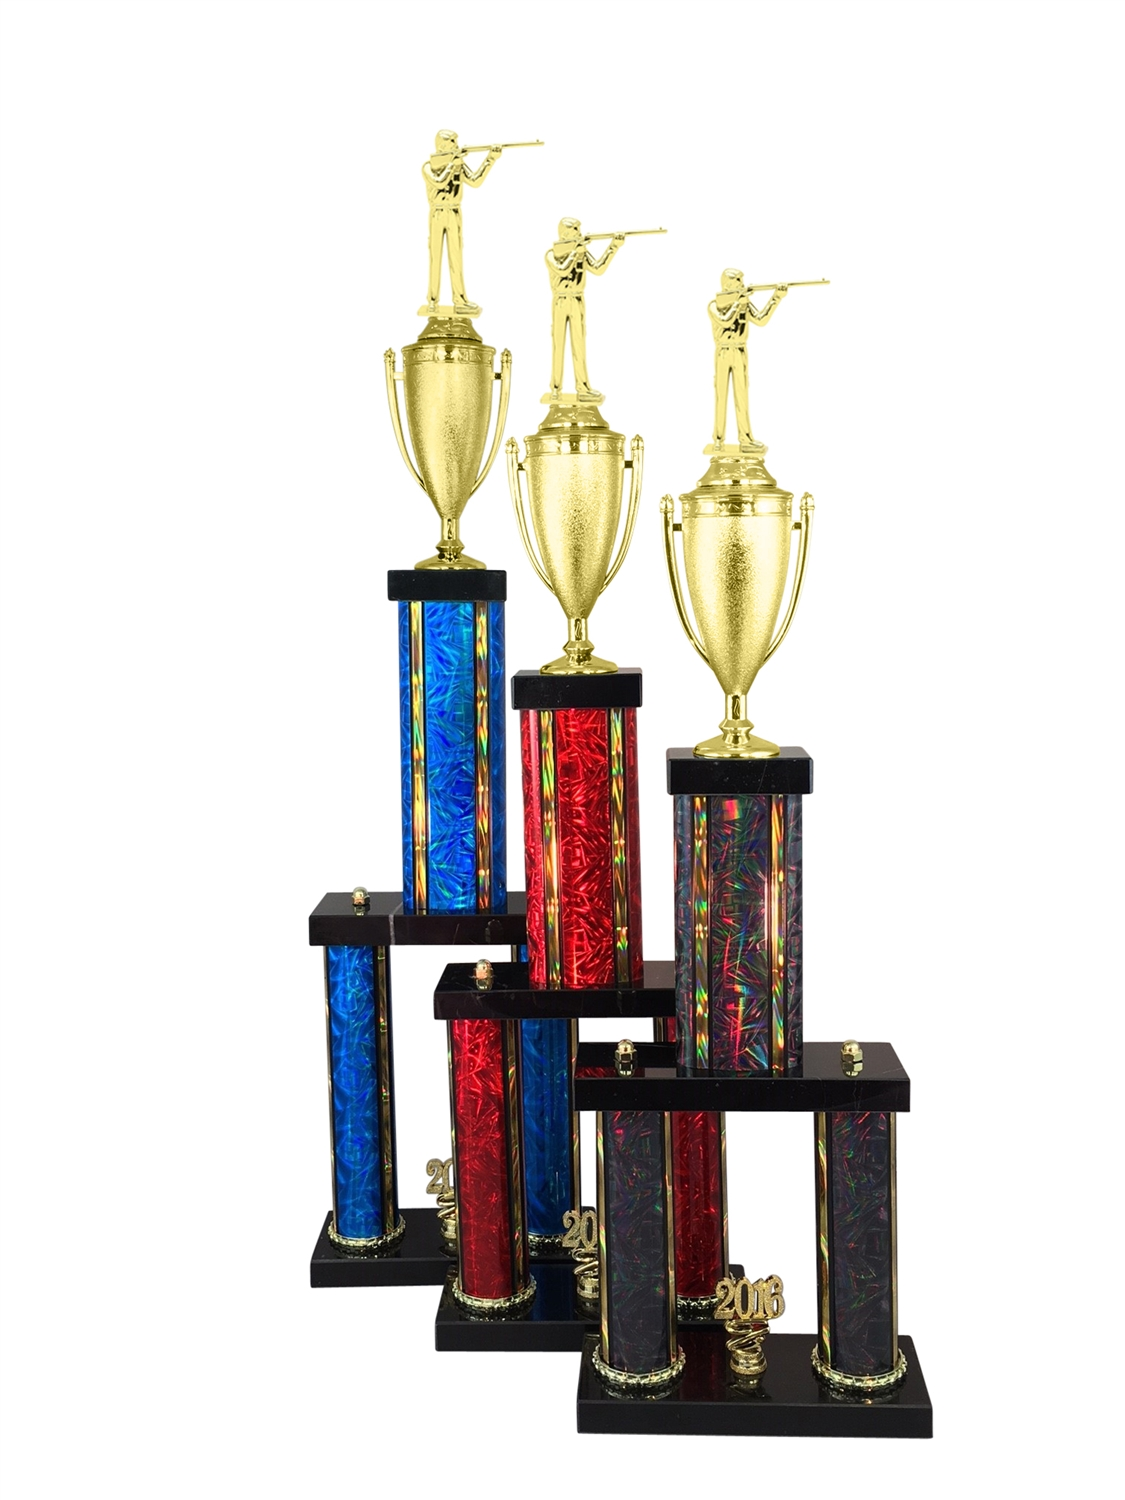 Rifleman Trophy Available in 11 Color & 6 Size Options